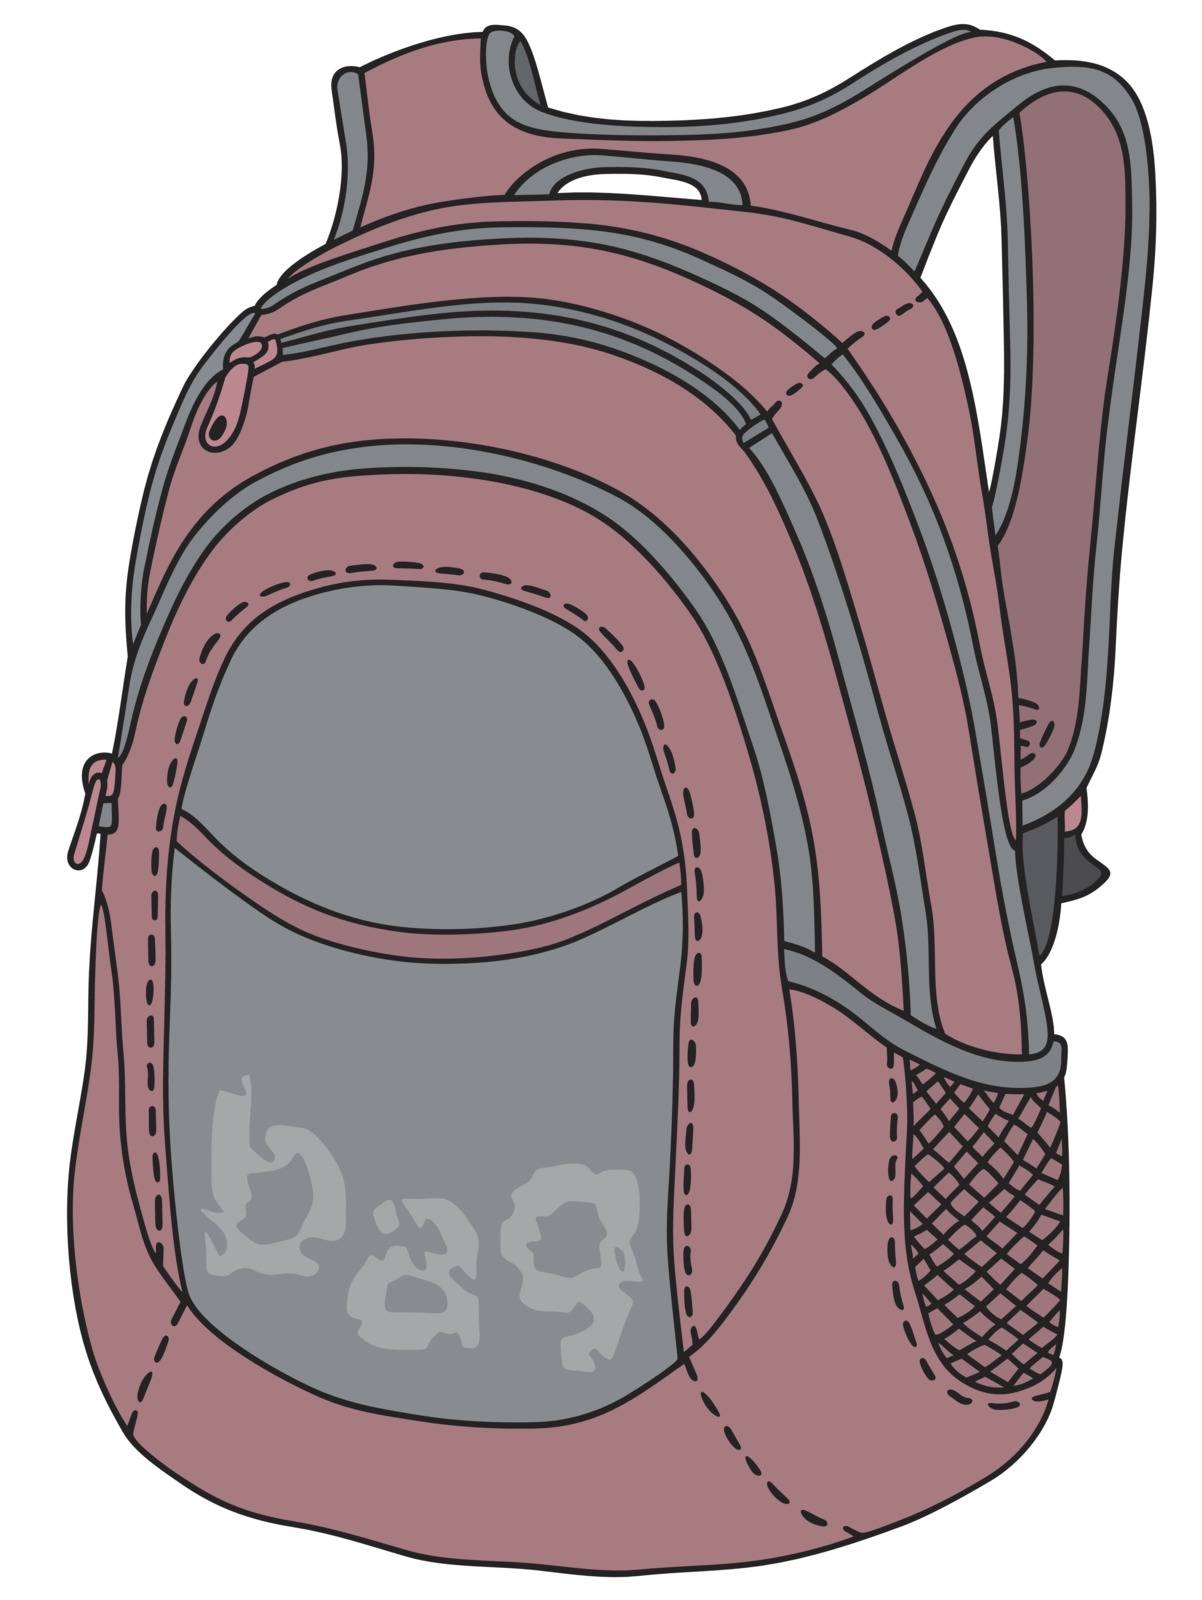 Hand drawing of a violet sports bag